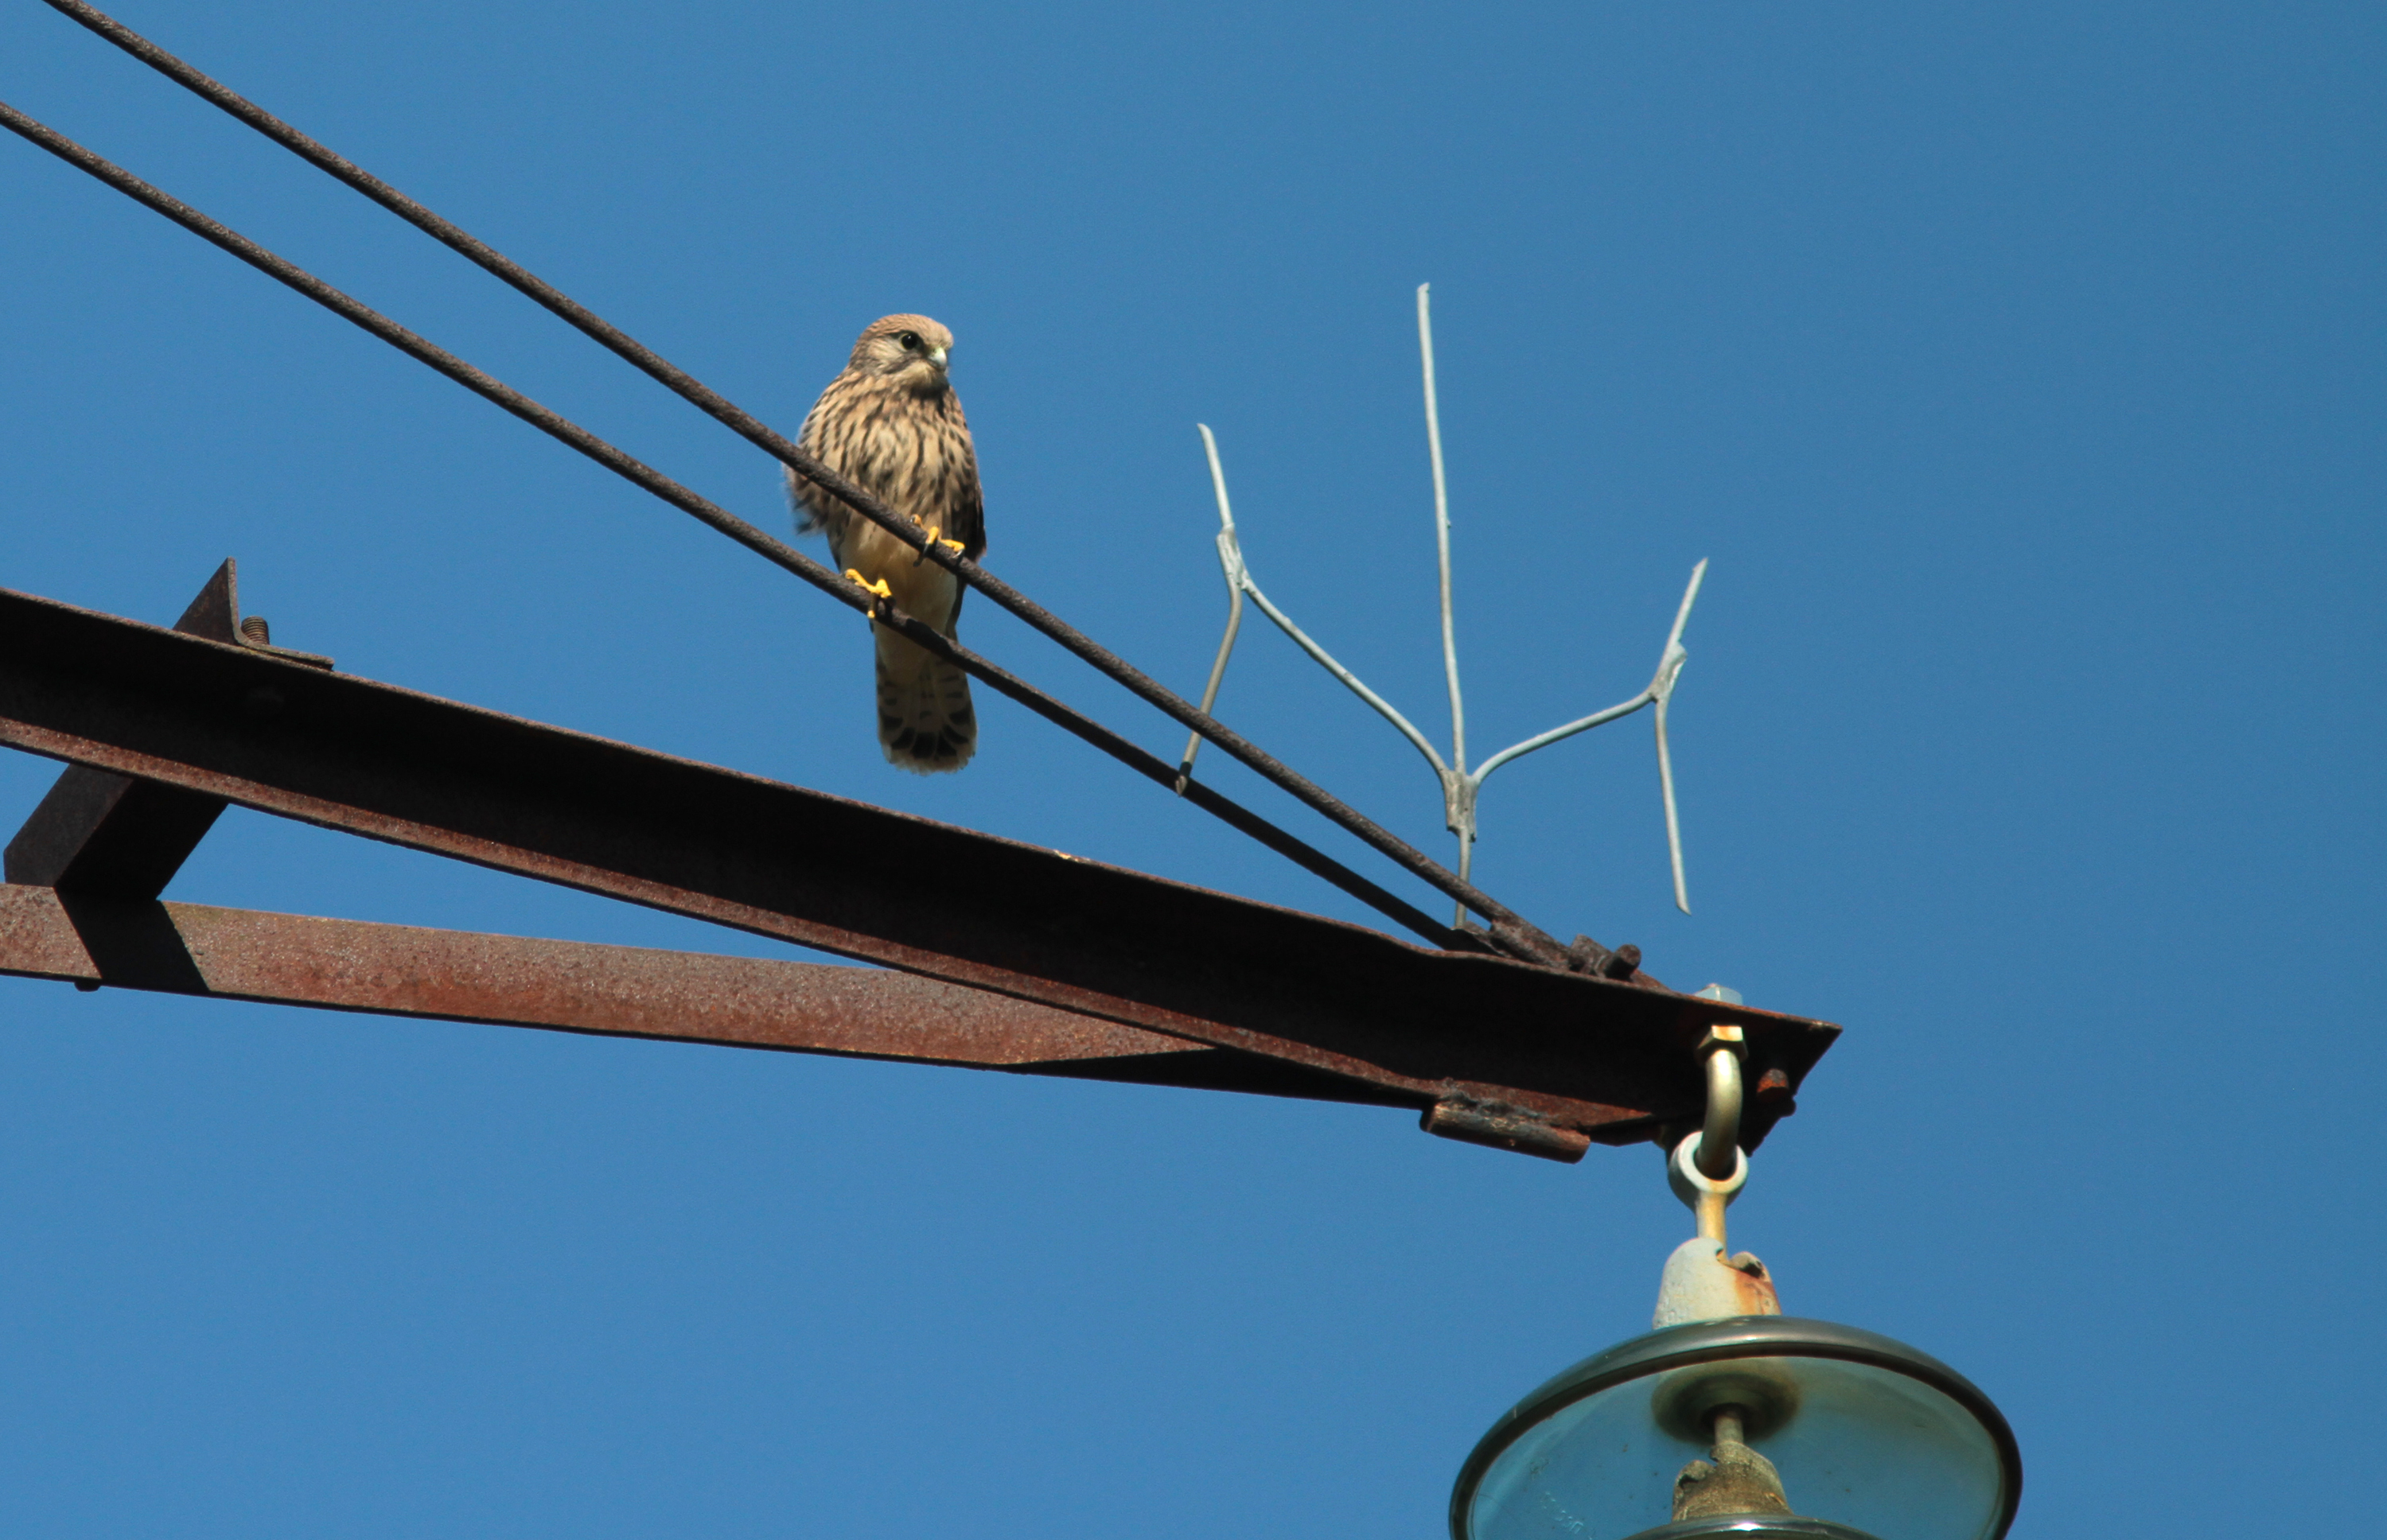 European Commission has approved the final LIFE Birds on Electrogrid report